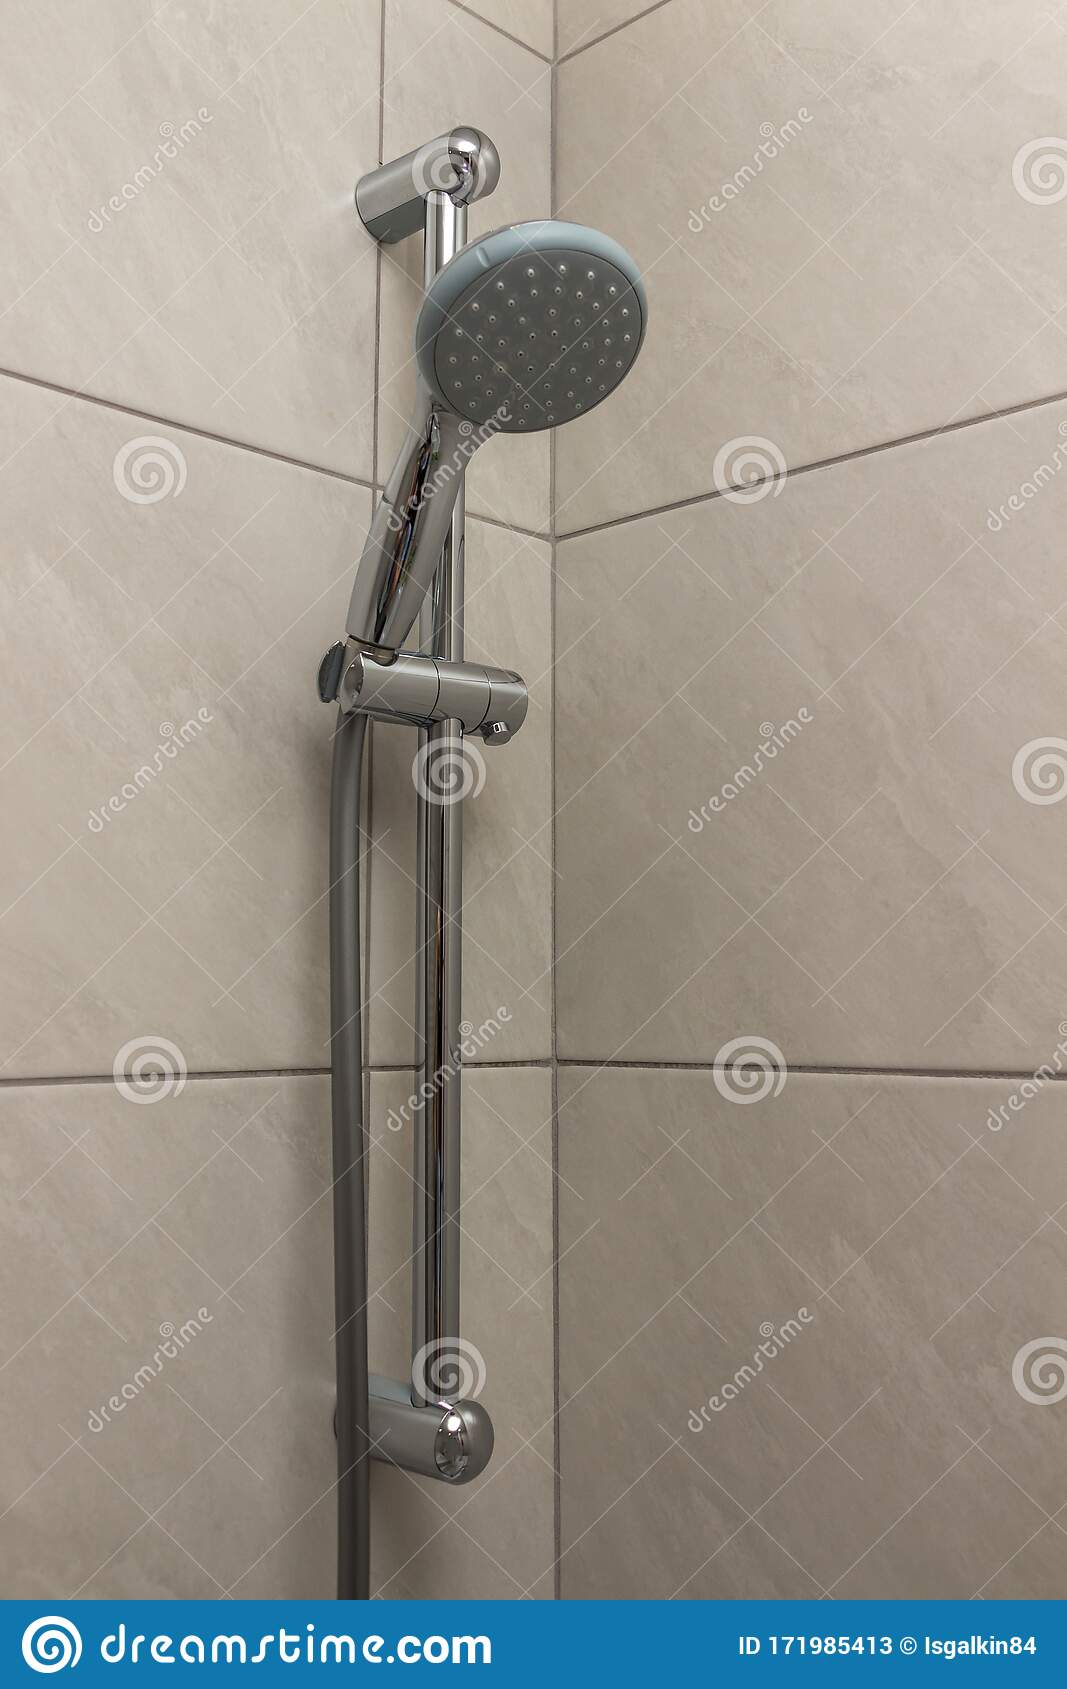 https www dreamstime com option installing shower bathroom nickel plated plumbing fixtures gray ceramic wall tiles close up head attachment image171985413